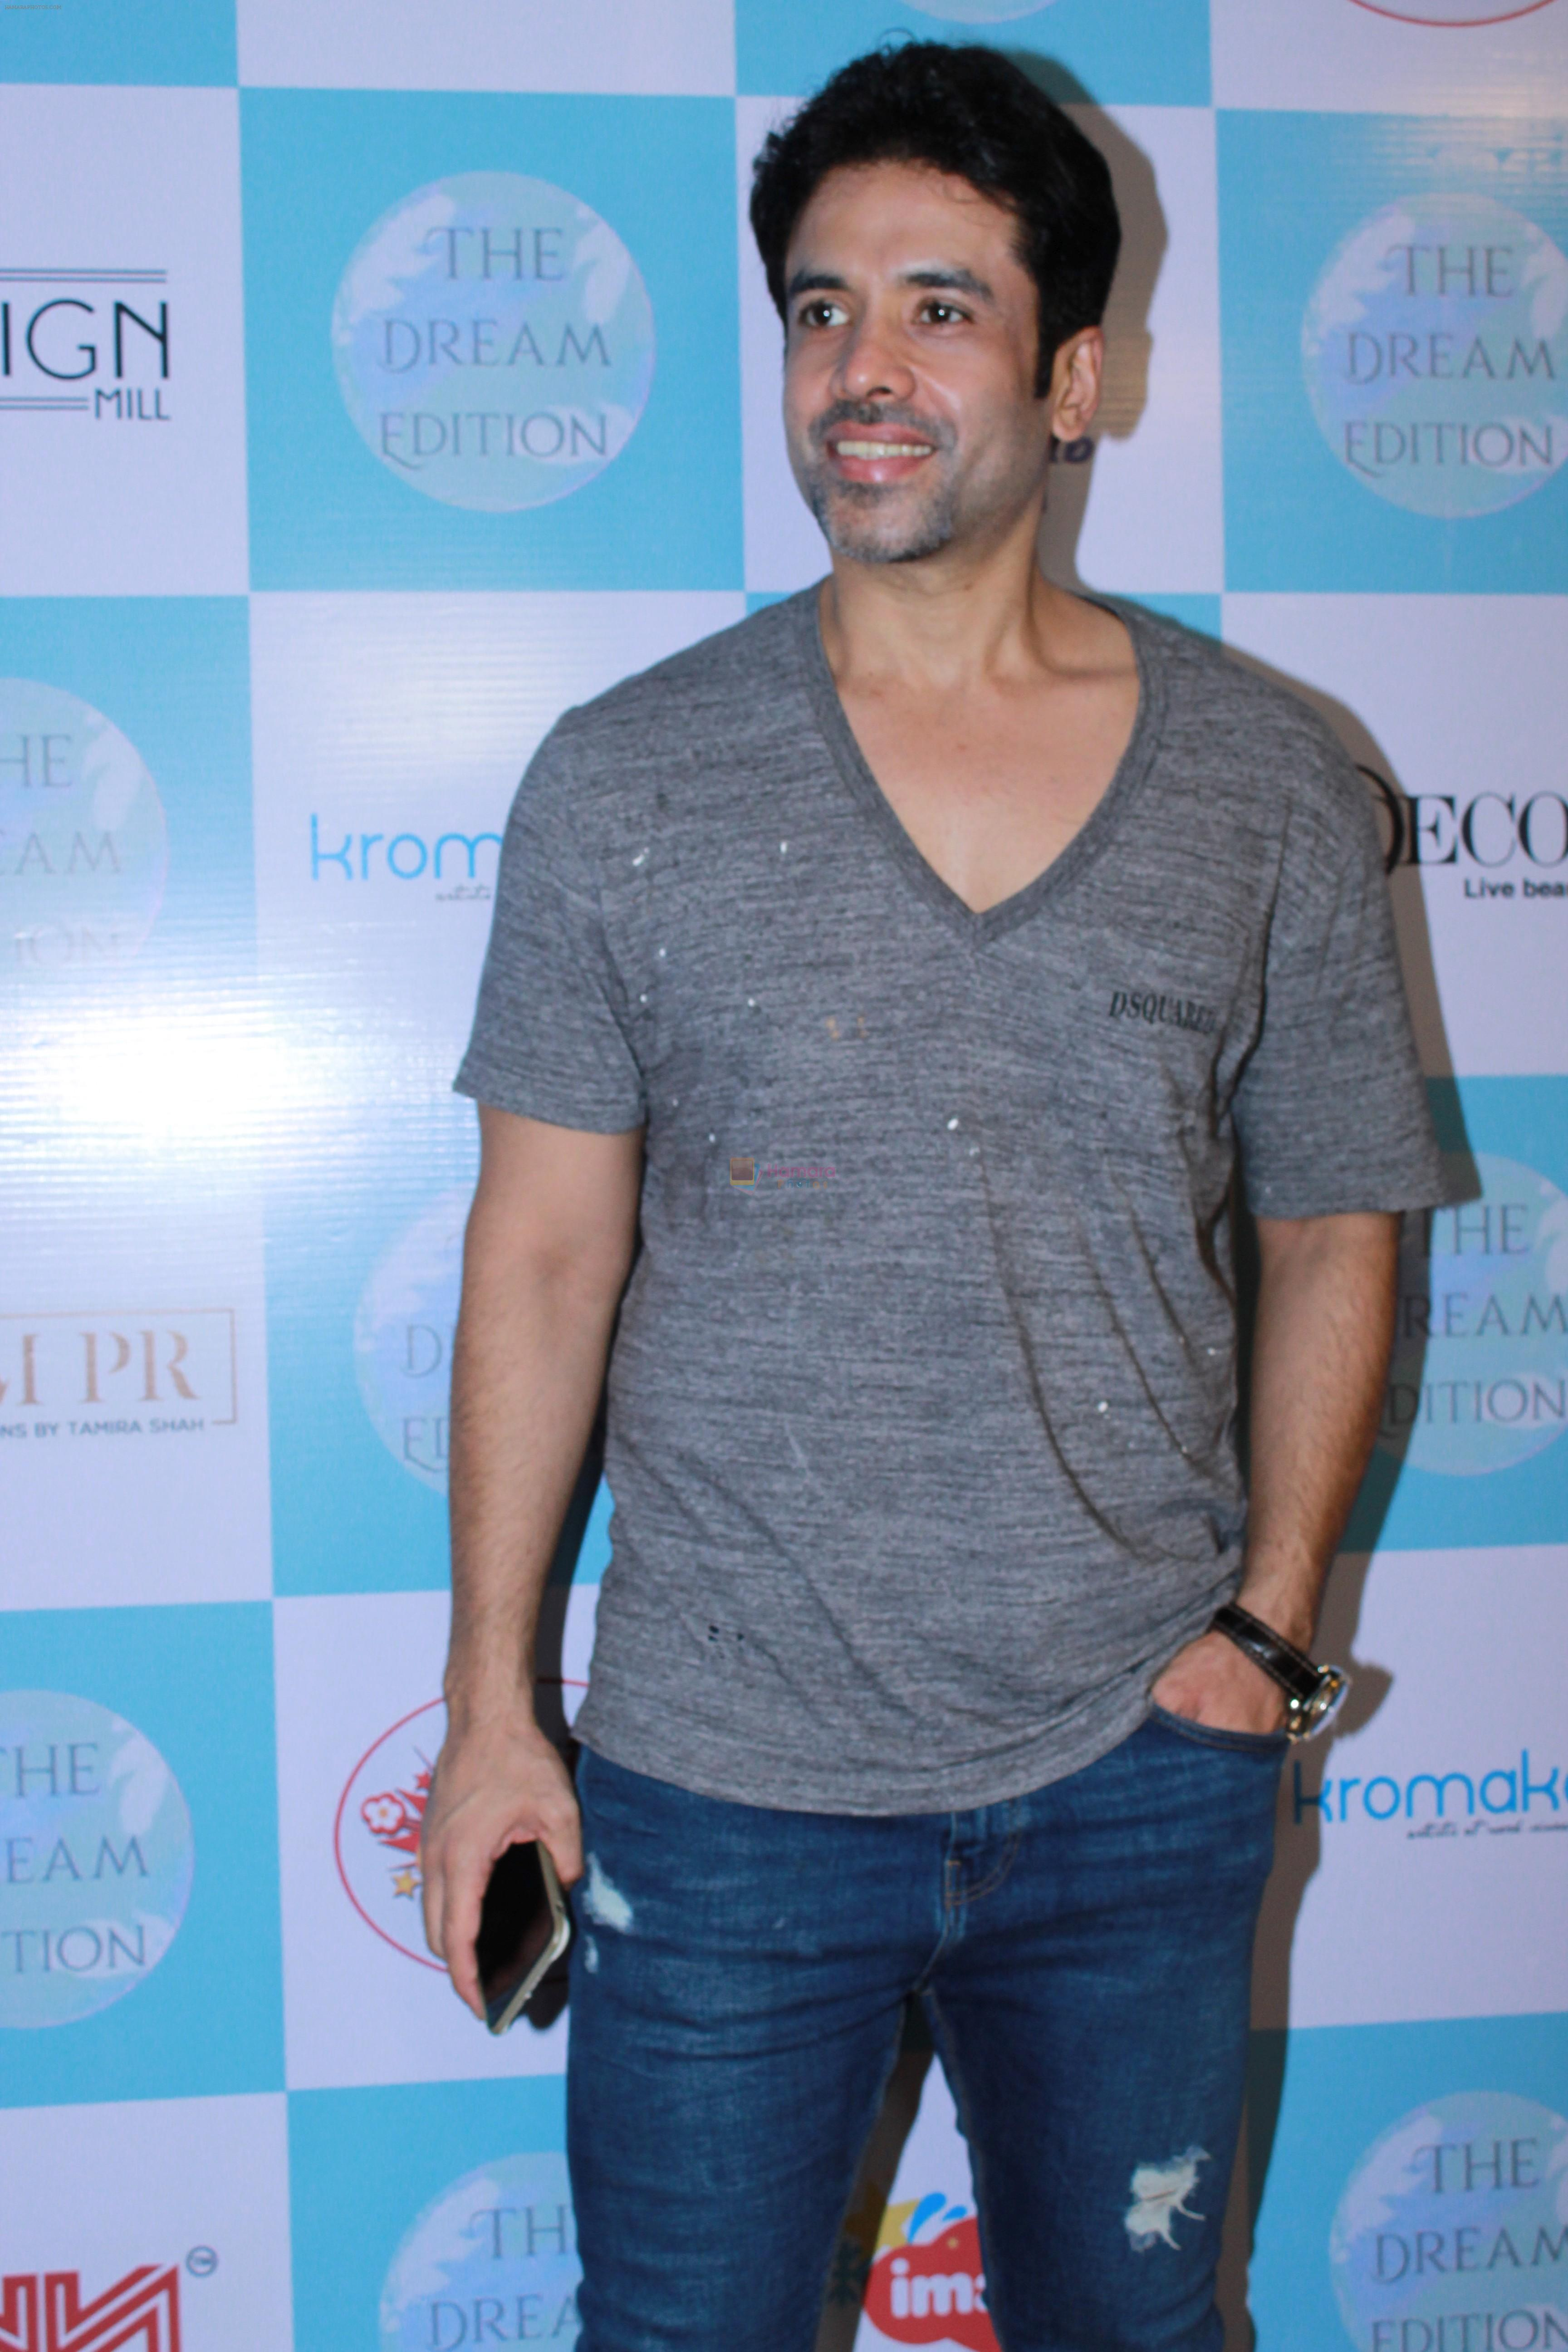 Tusshar Kapoor At The Dream Edition Lifestyle Fare For Mommies & Kids on 28th AUg 2019